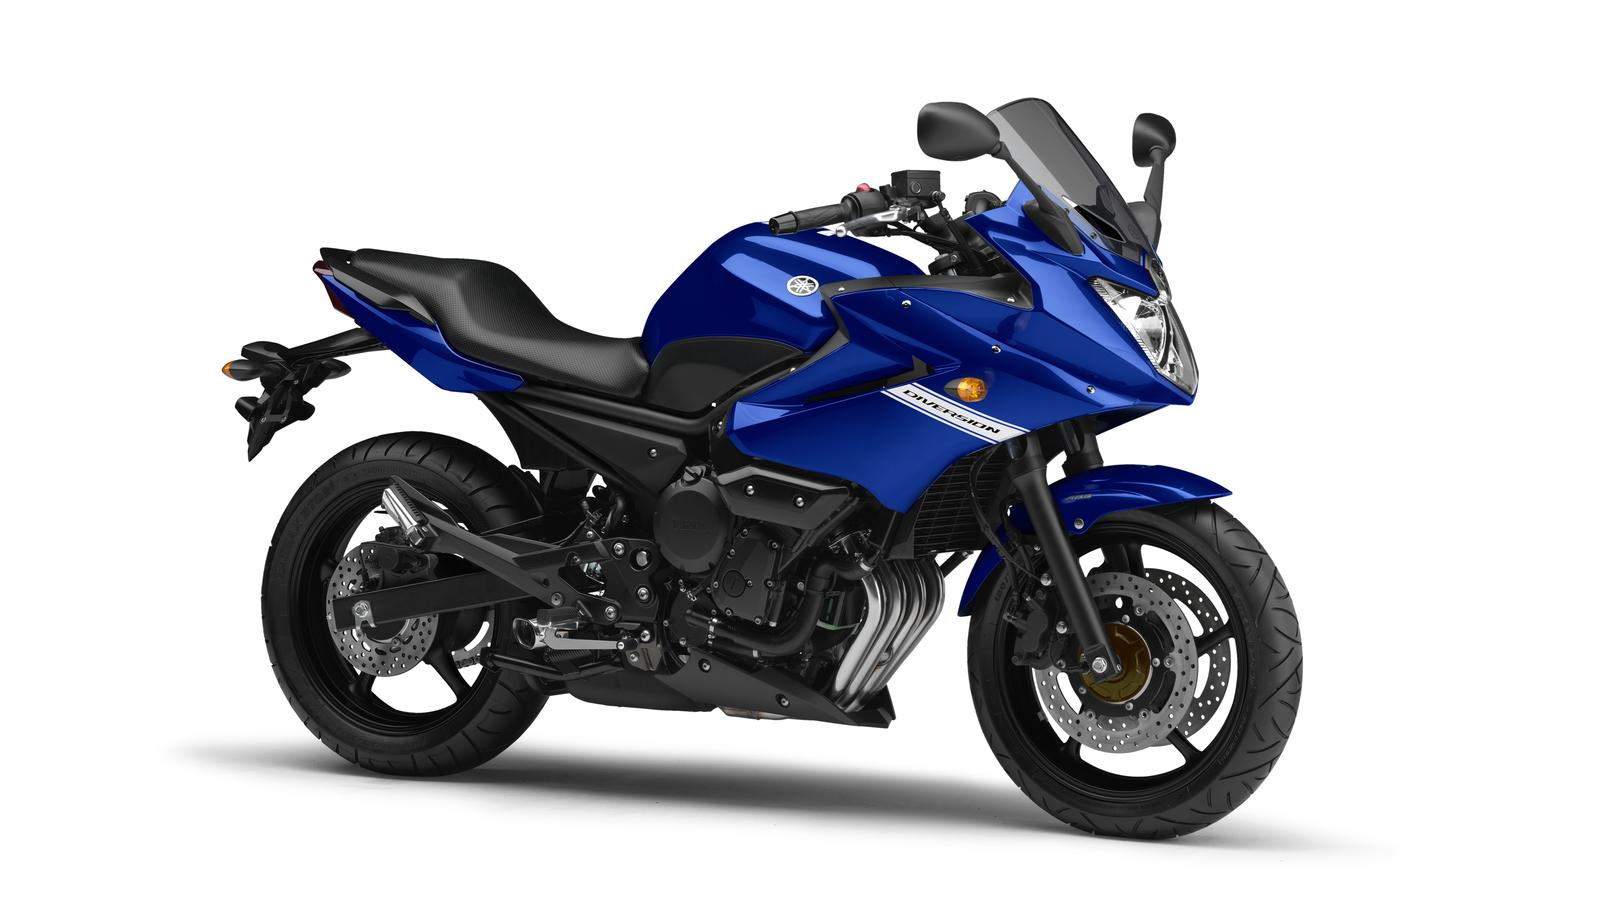 2011 Yamaha XJ6 Diversion EU Viper Blue Studio 001